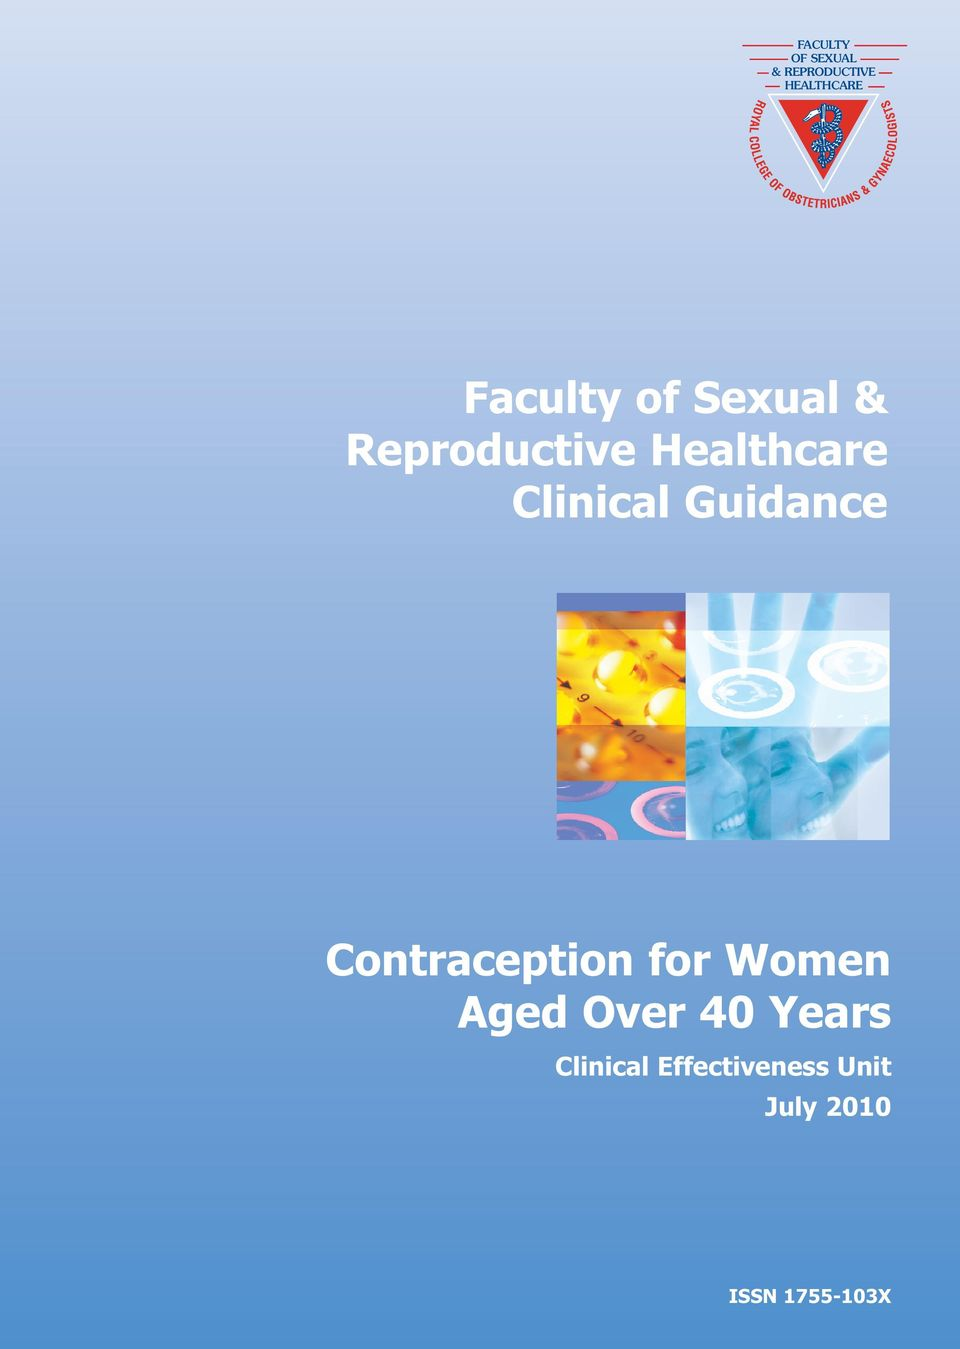 Clinical Guidance Contraception for Women Aged